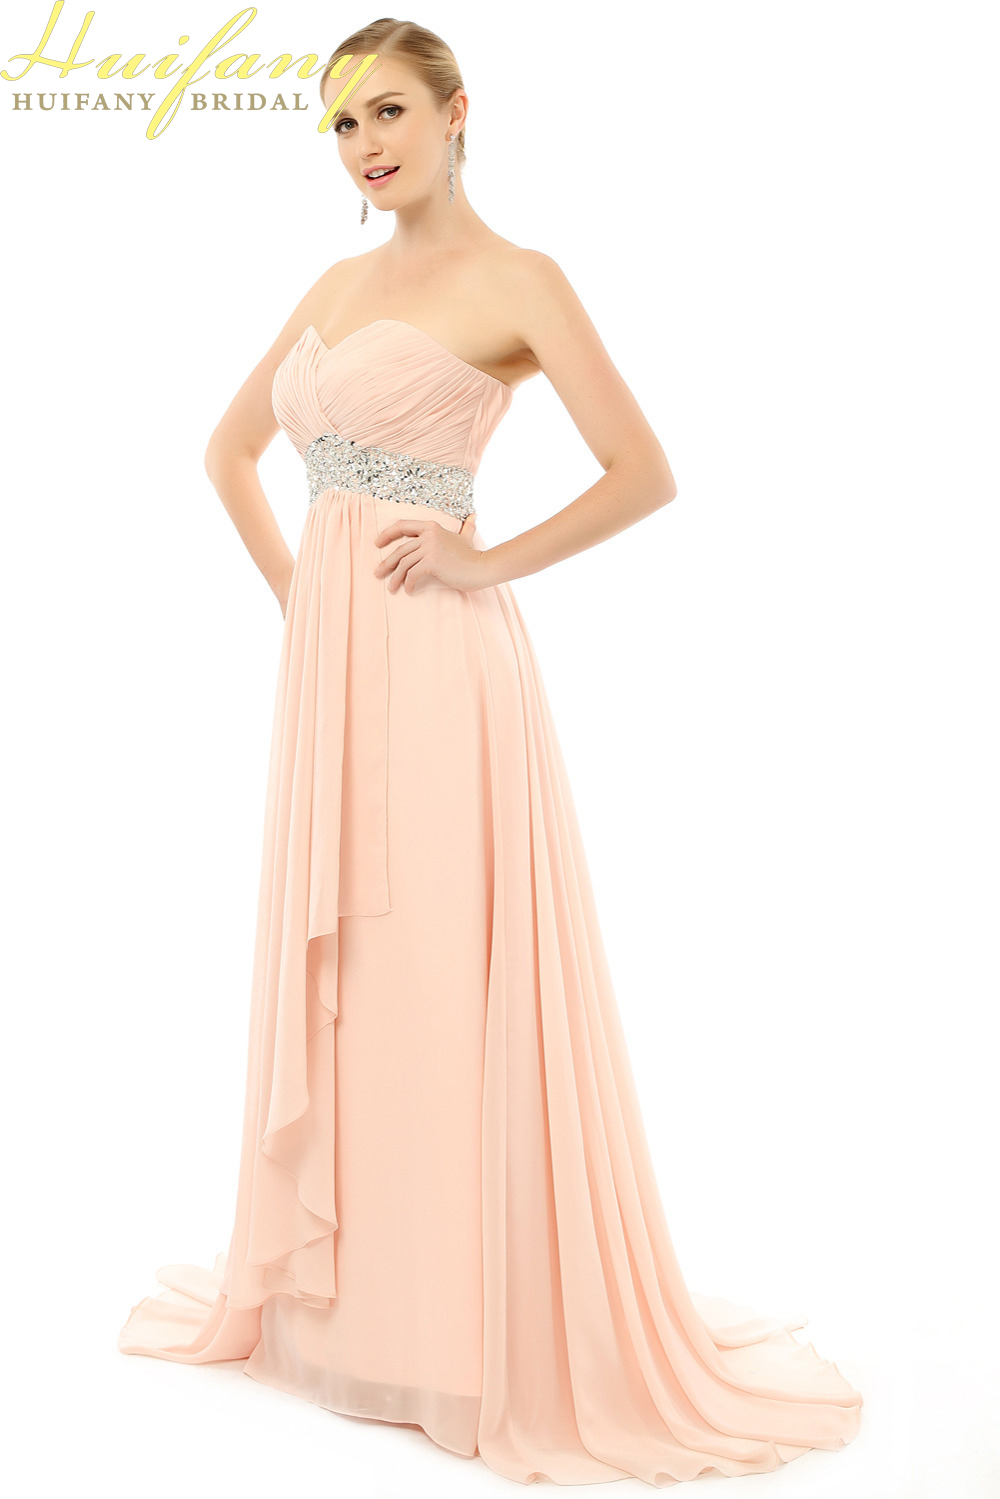 Strapless Coral Colored Bridesmaid Dresses With Beading Sashes Long